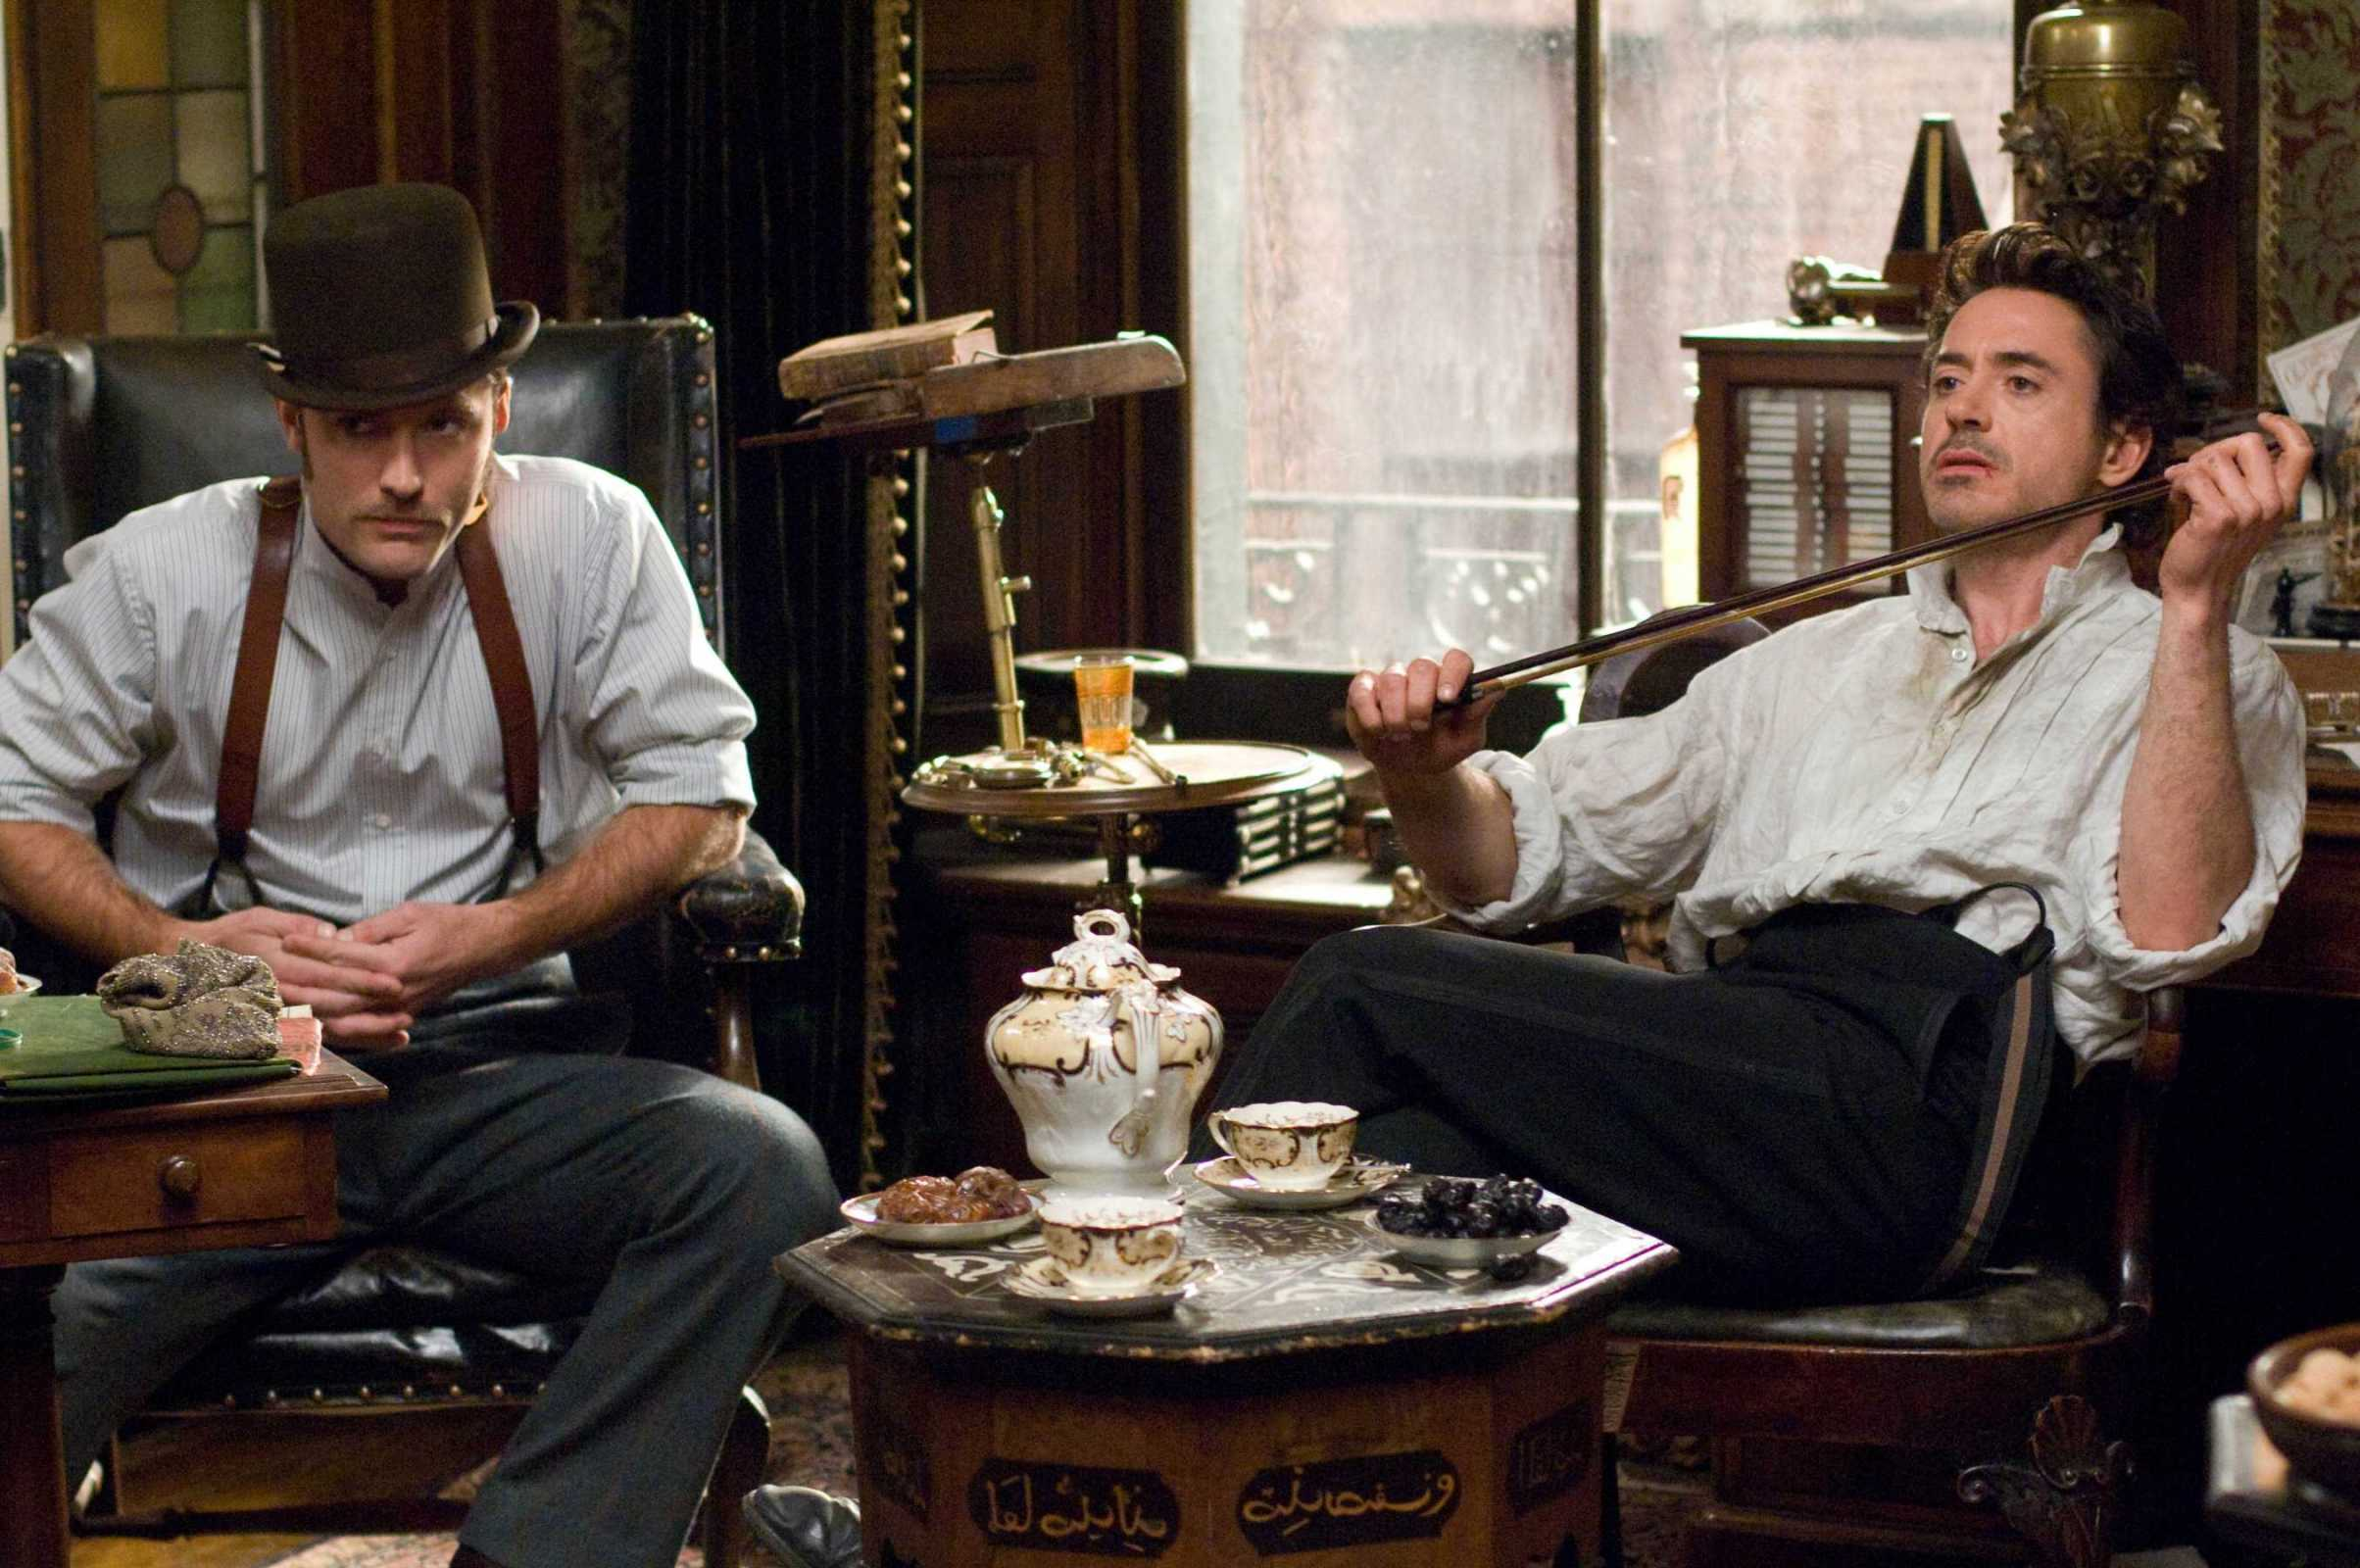 Movie Review: Sherlock Holmes (Dan's Take) | Andy @ The Movies